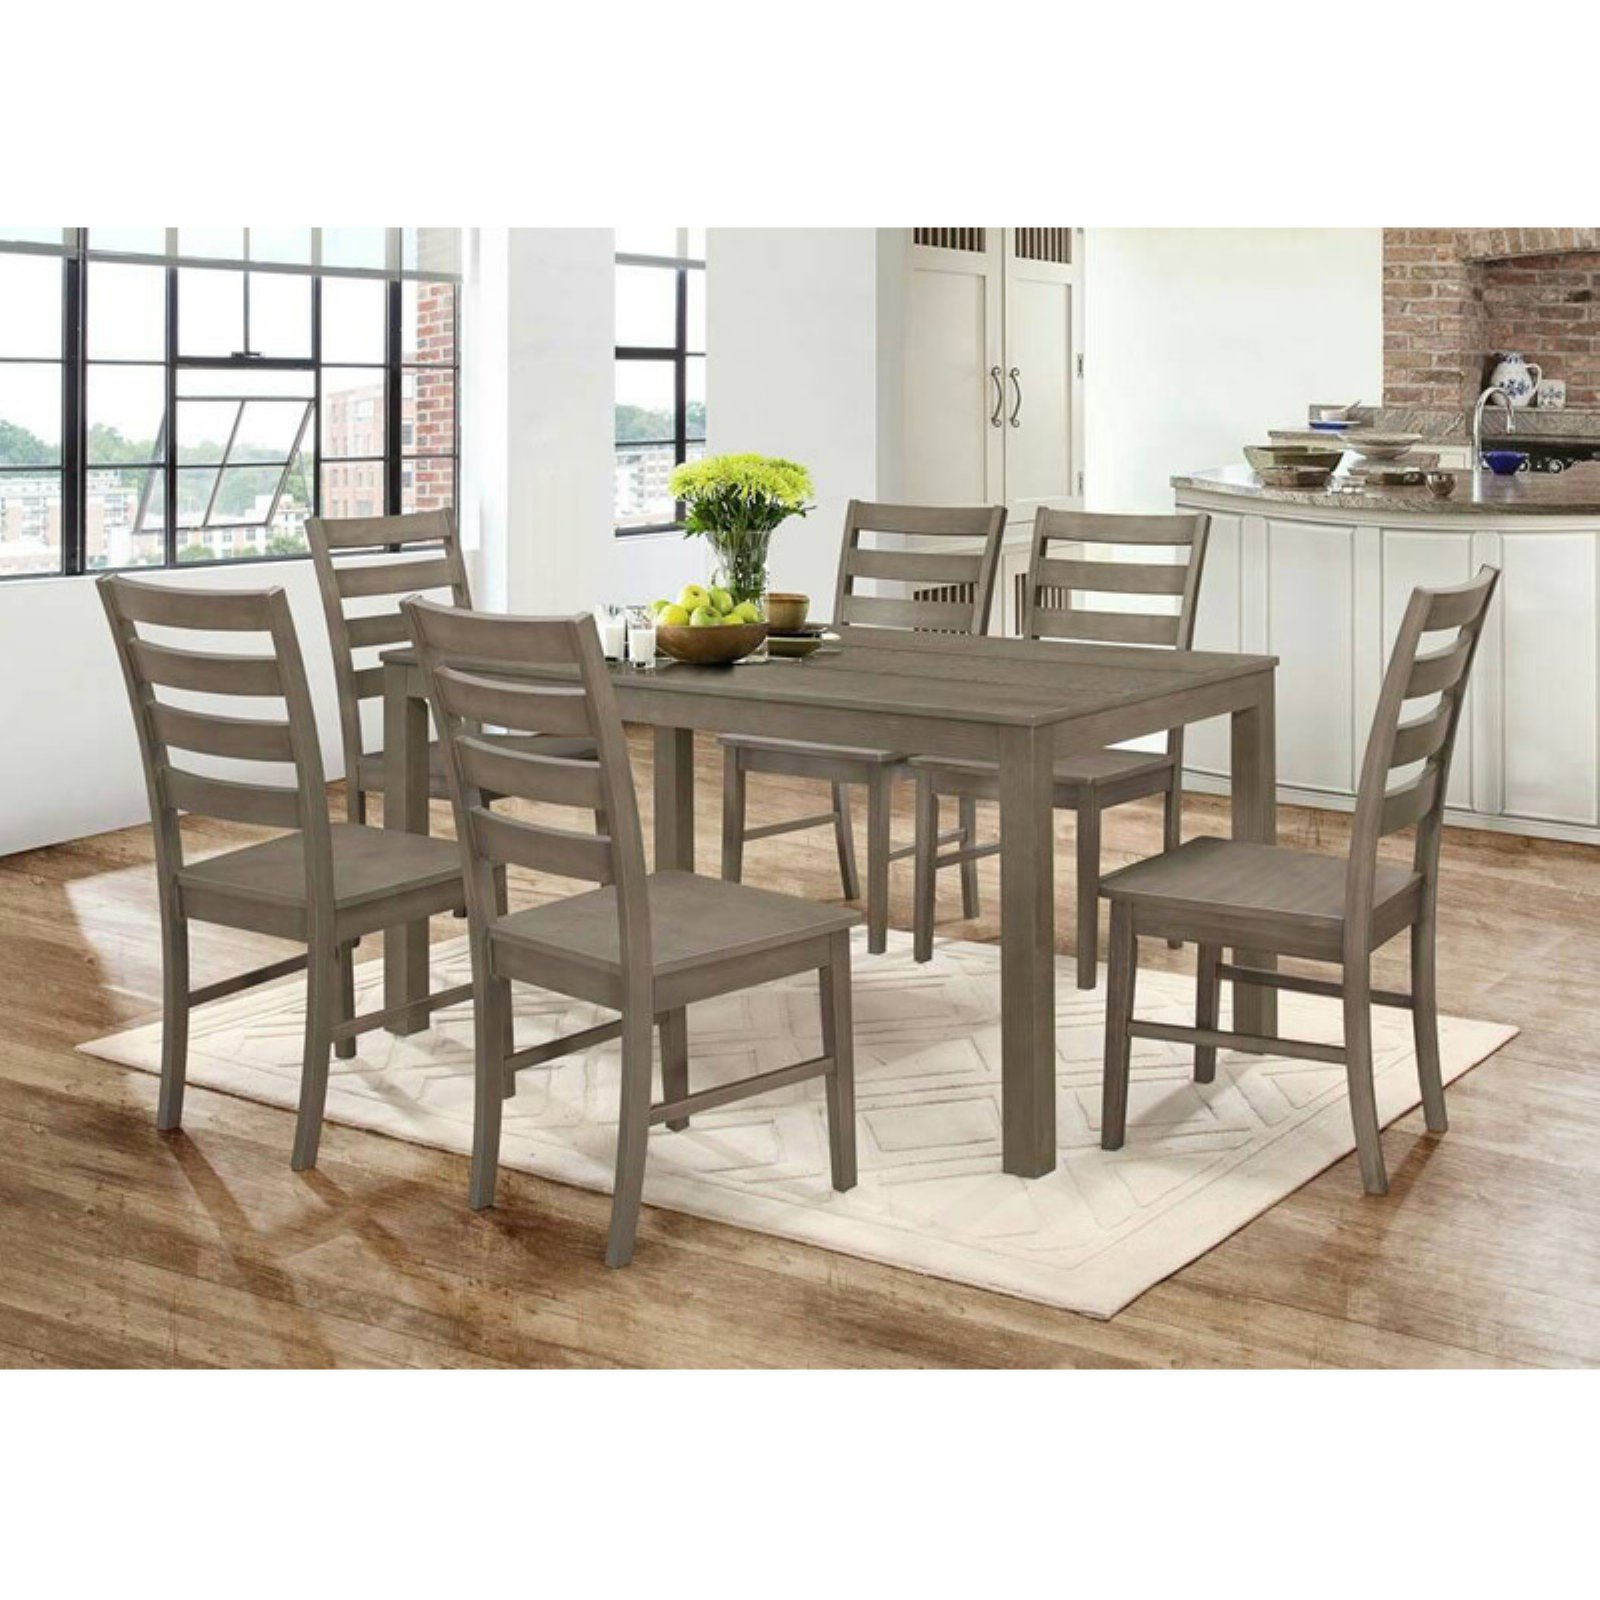 Ideal 7 Piece Dining Table Set